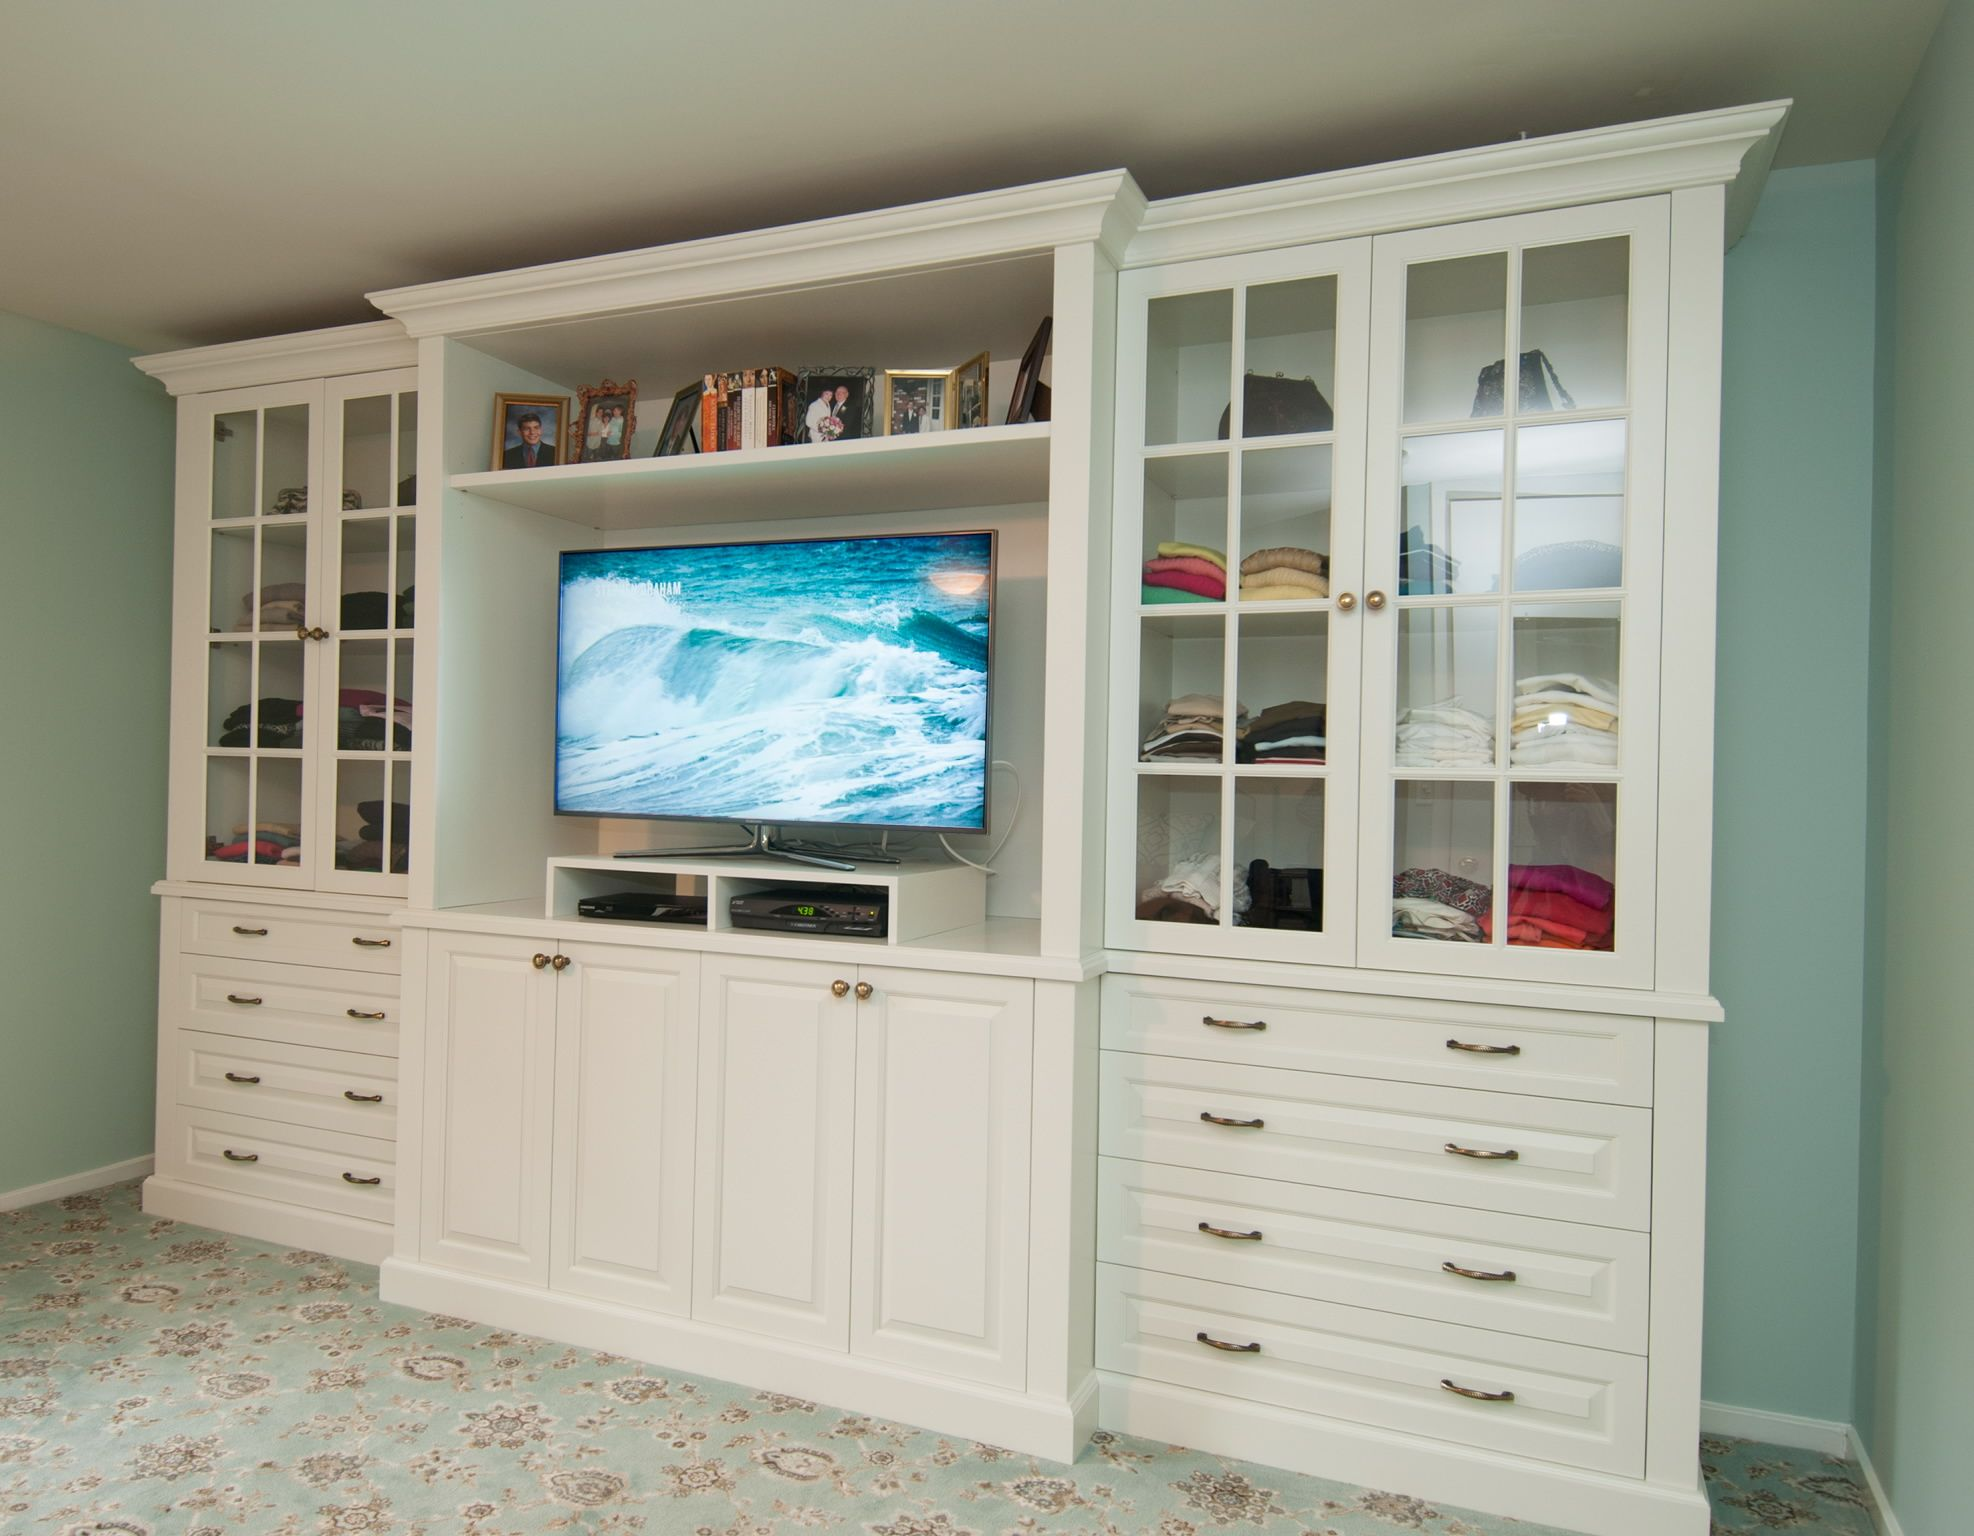 Nice TV Stand, Dresser, And Display Shelves Combination Creates Elegant Built In  Style Efficiency